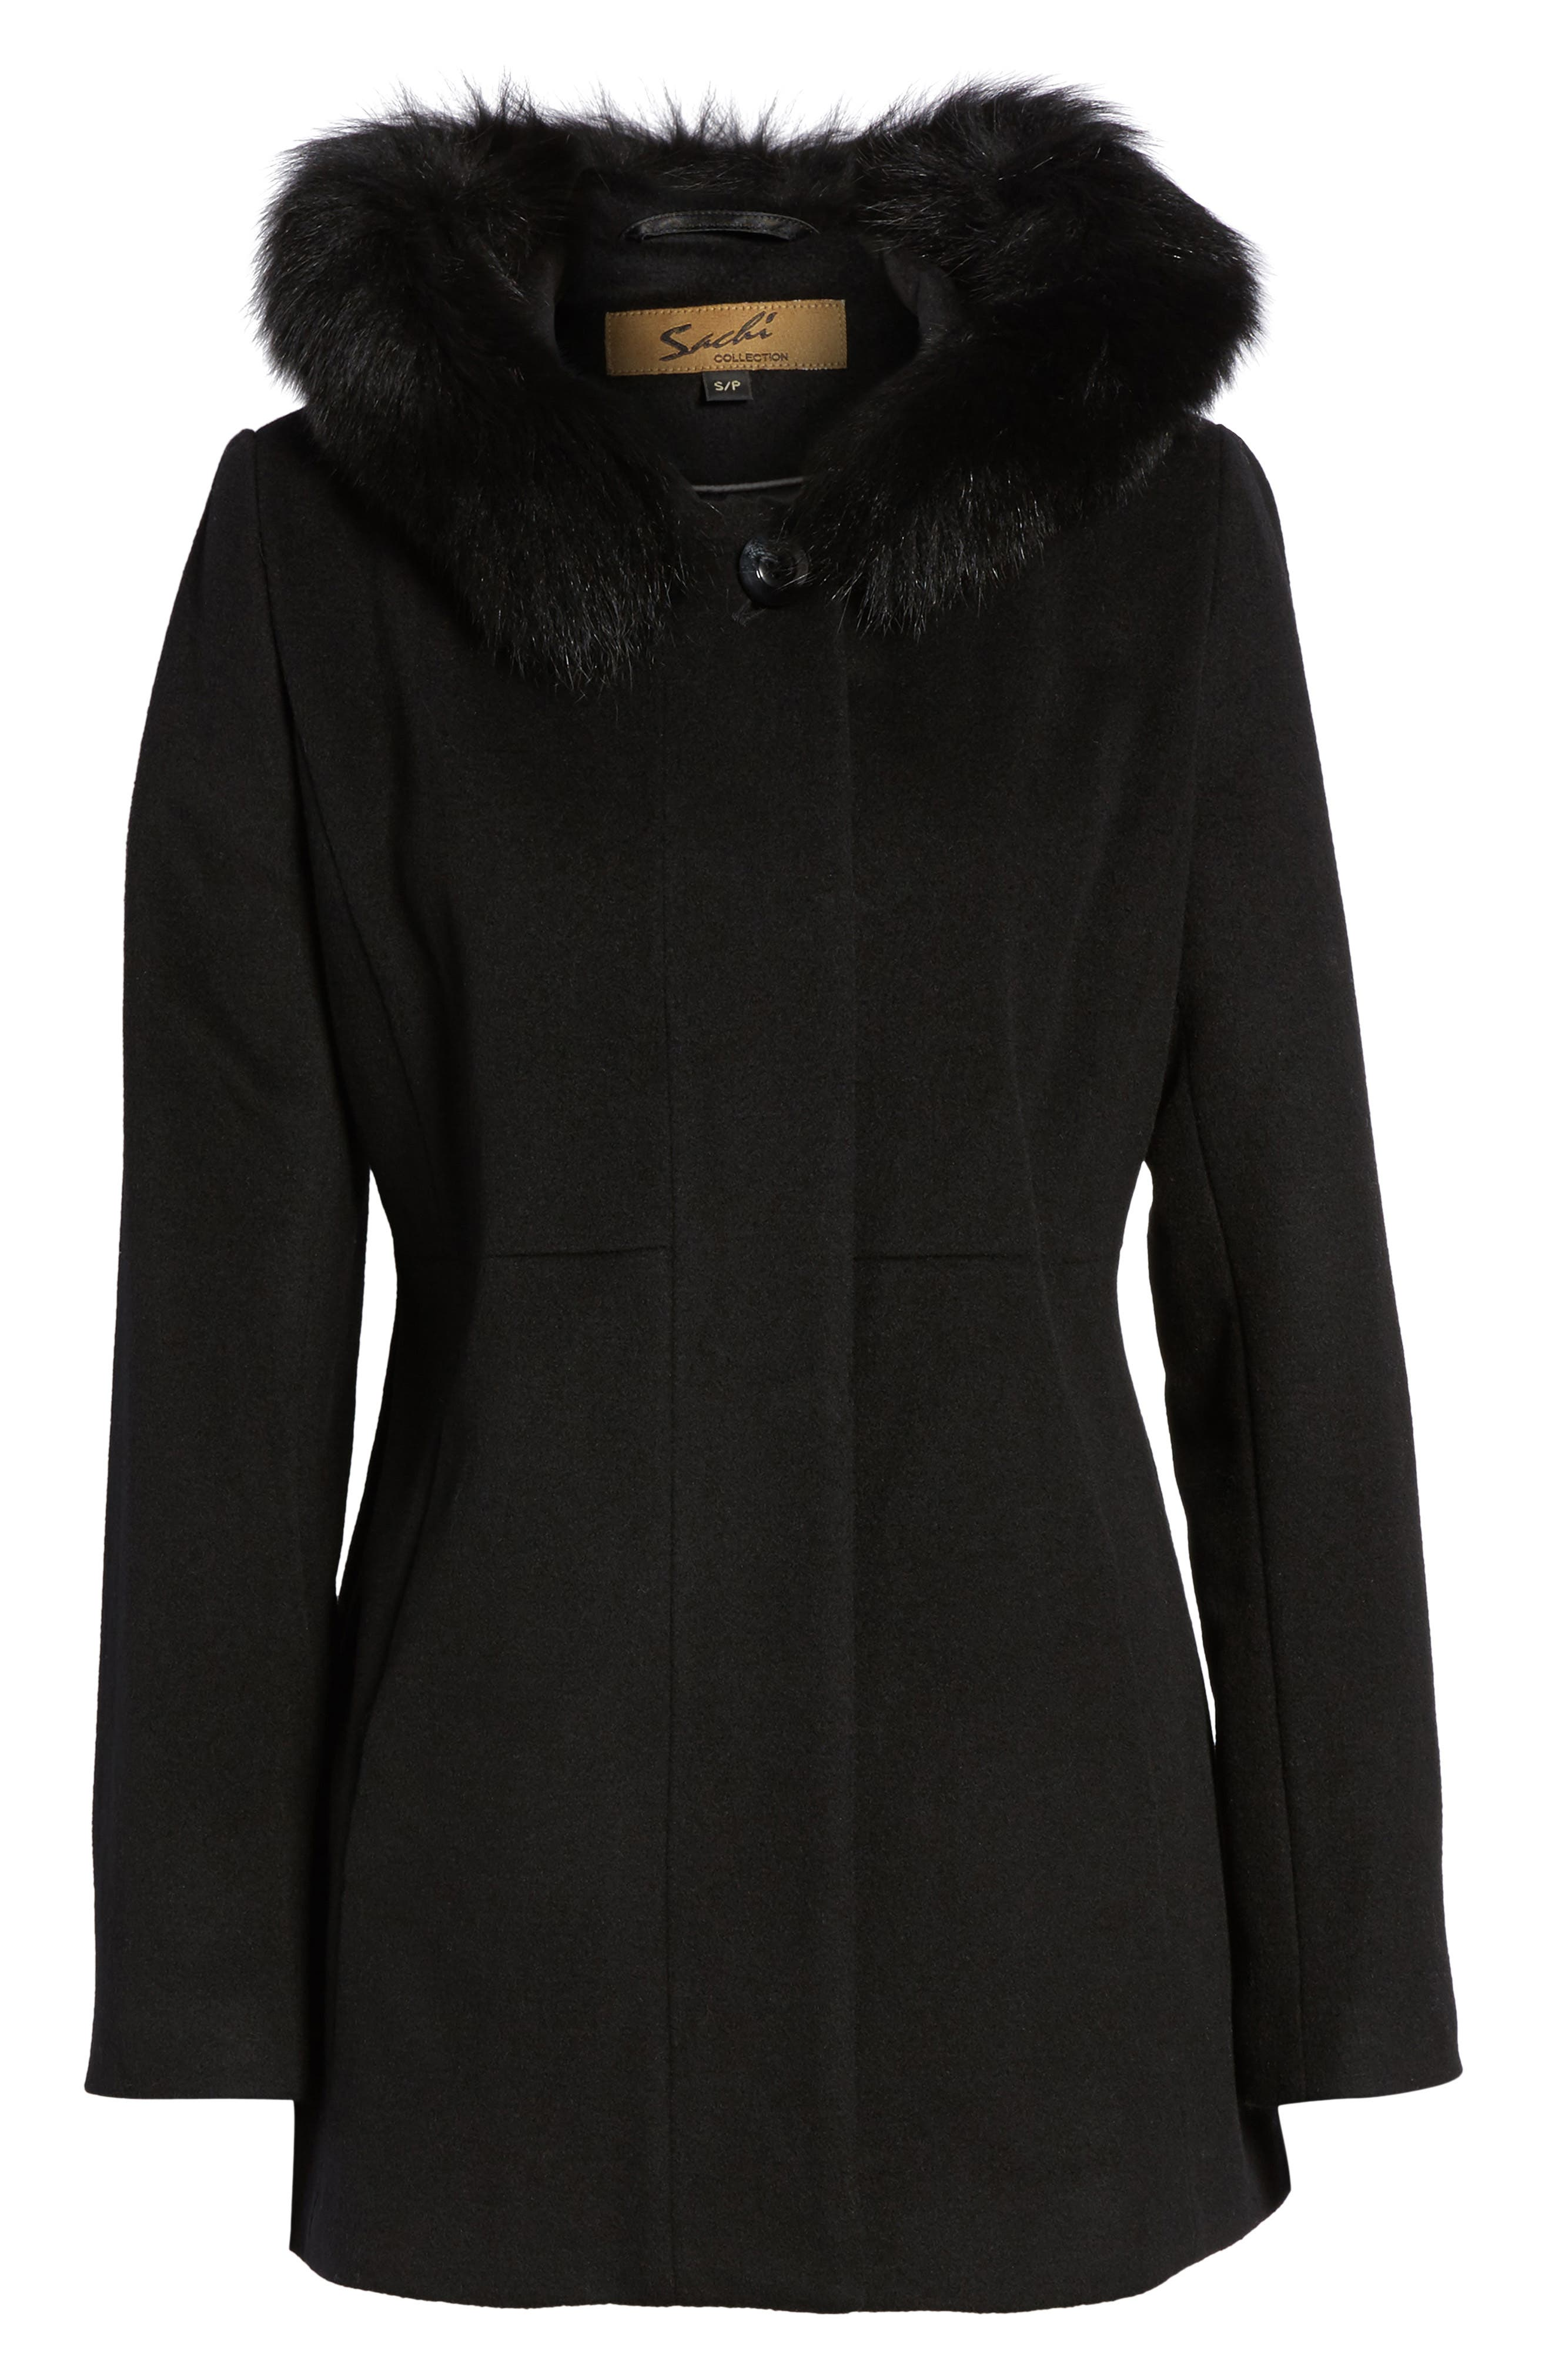 Main Image - Sachi Genuine Fox Fur Trim Hooded Wool Blend Coat (Regular & Petite)